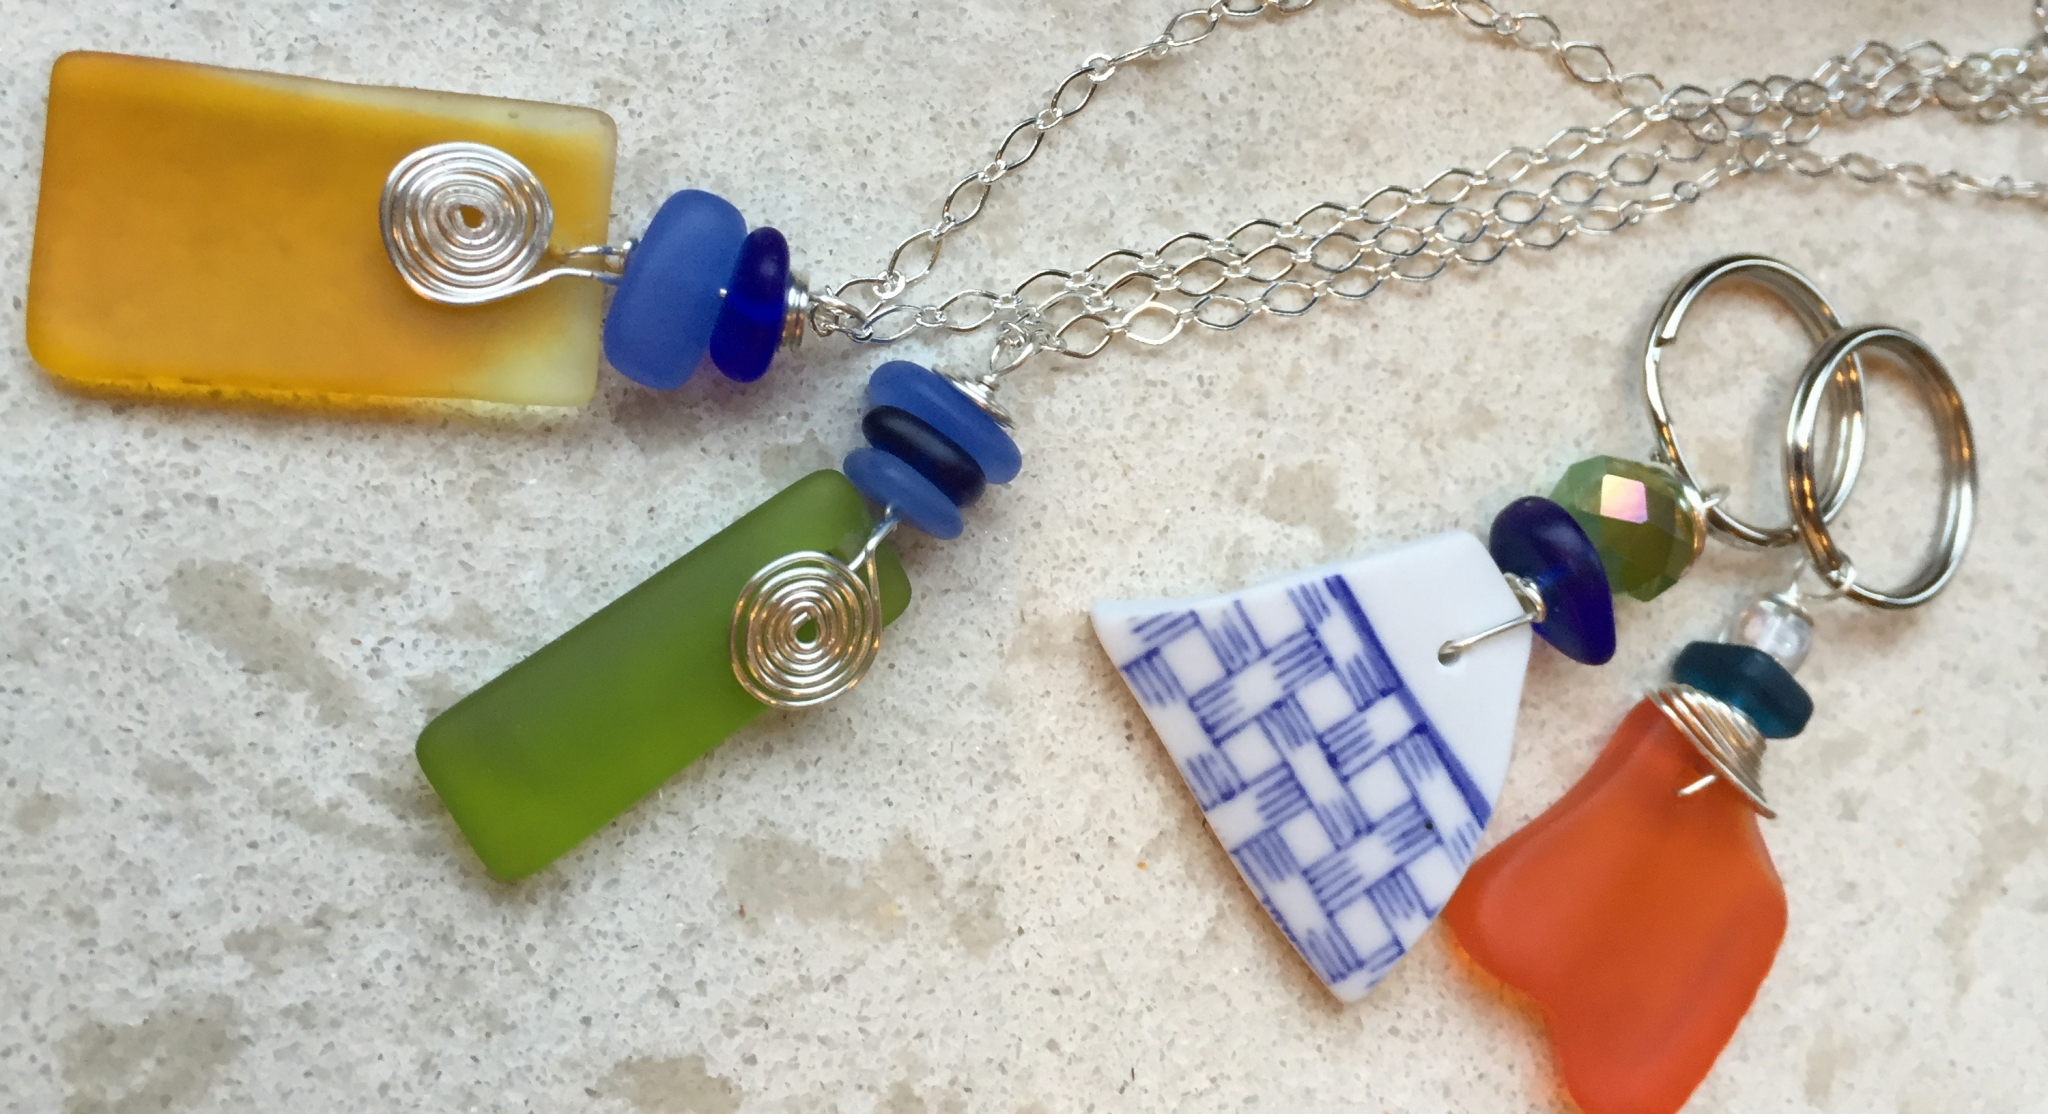 Art Night Out - Drilled Sea Glass Necklace & Key Chain, Session II